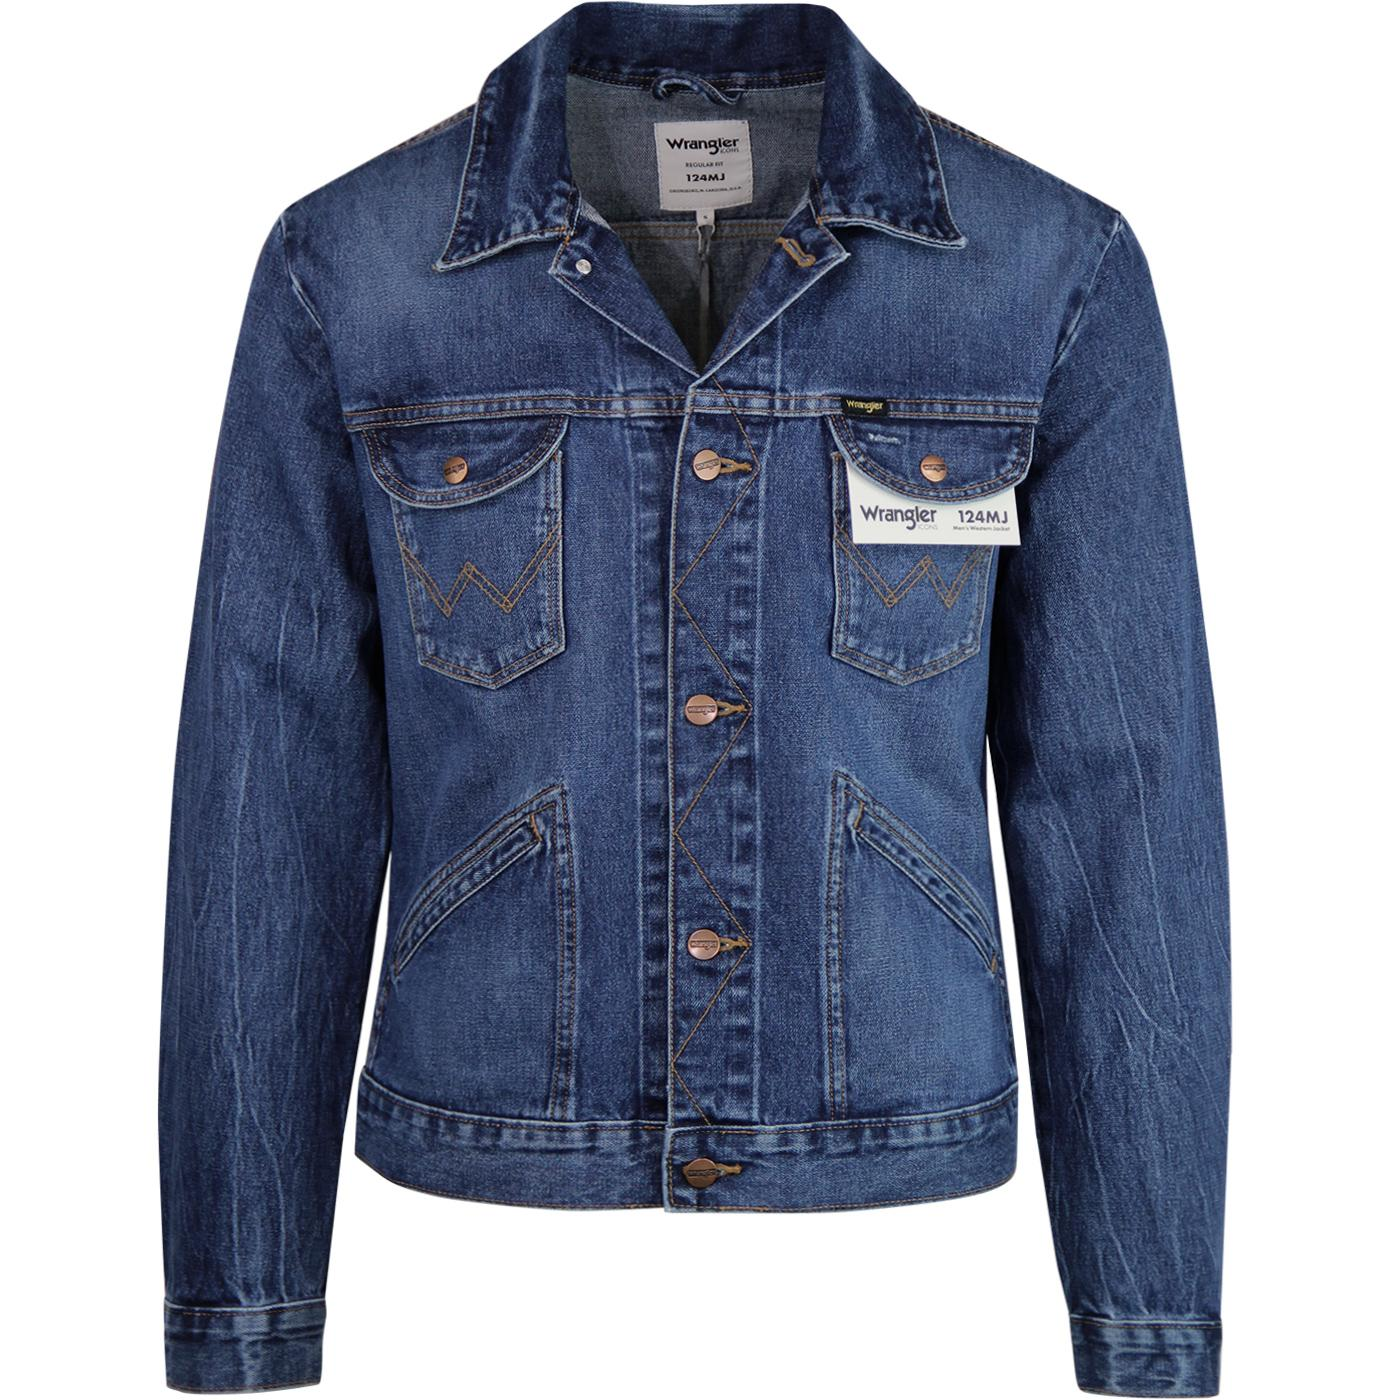 124MJ WRANGLER Mod Men's Western Jacket (3 Years)